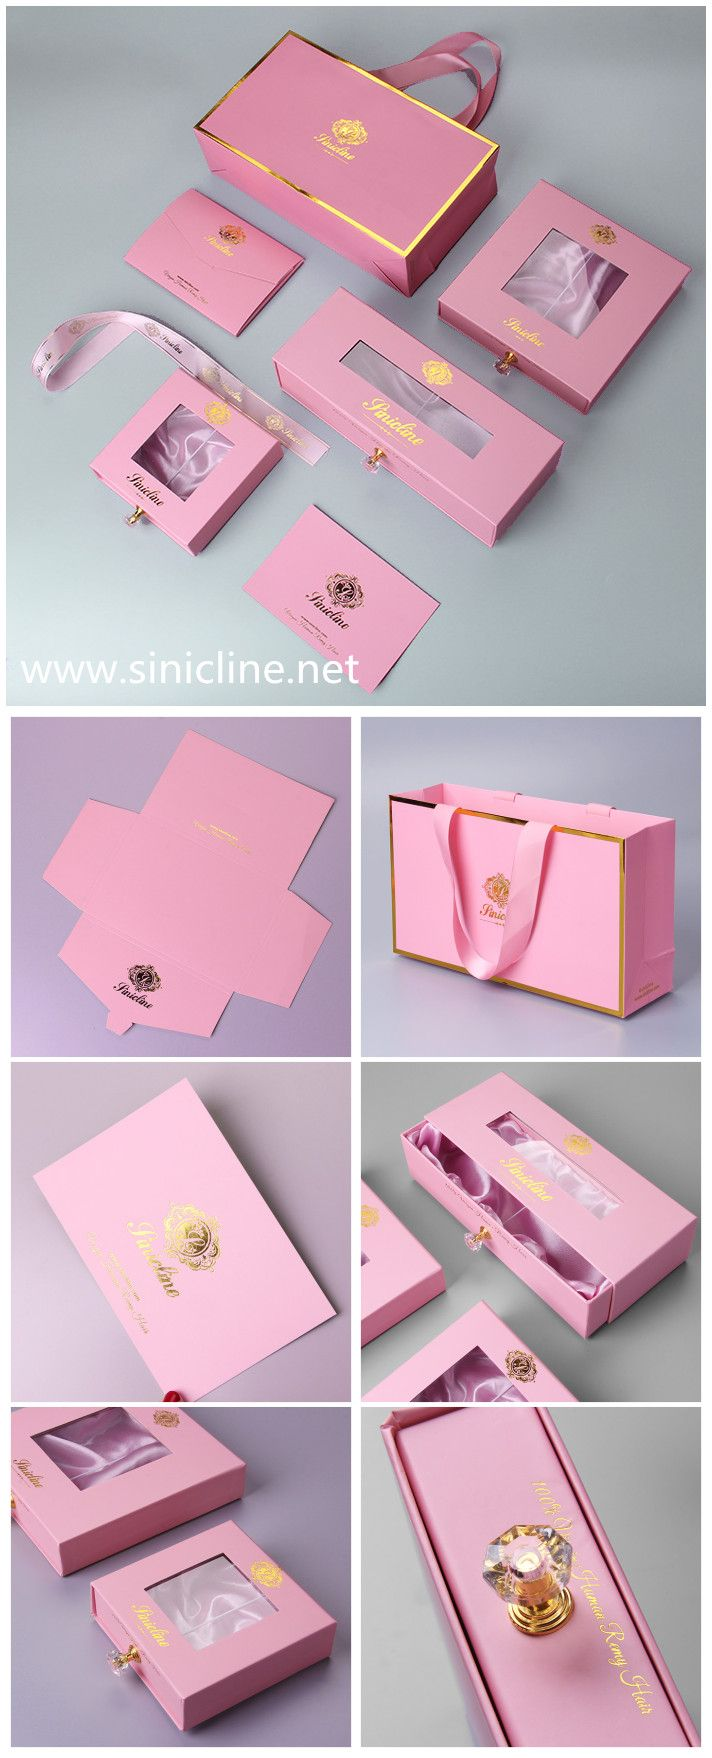 Luxury Hair Hair Extension Packaging Boxes And Bags By